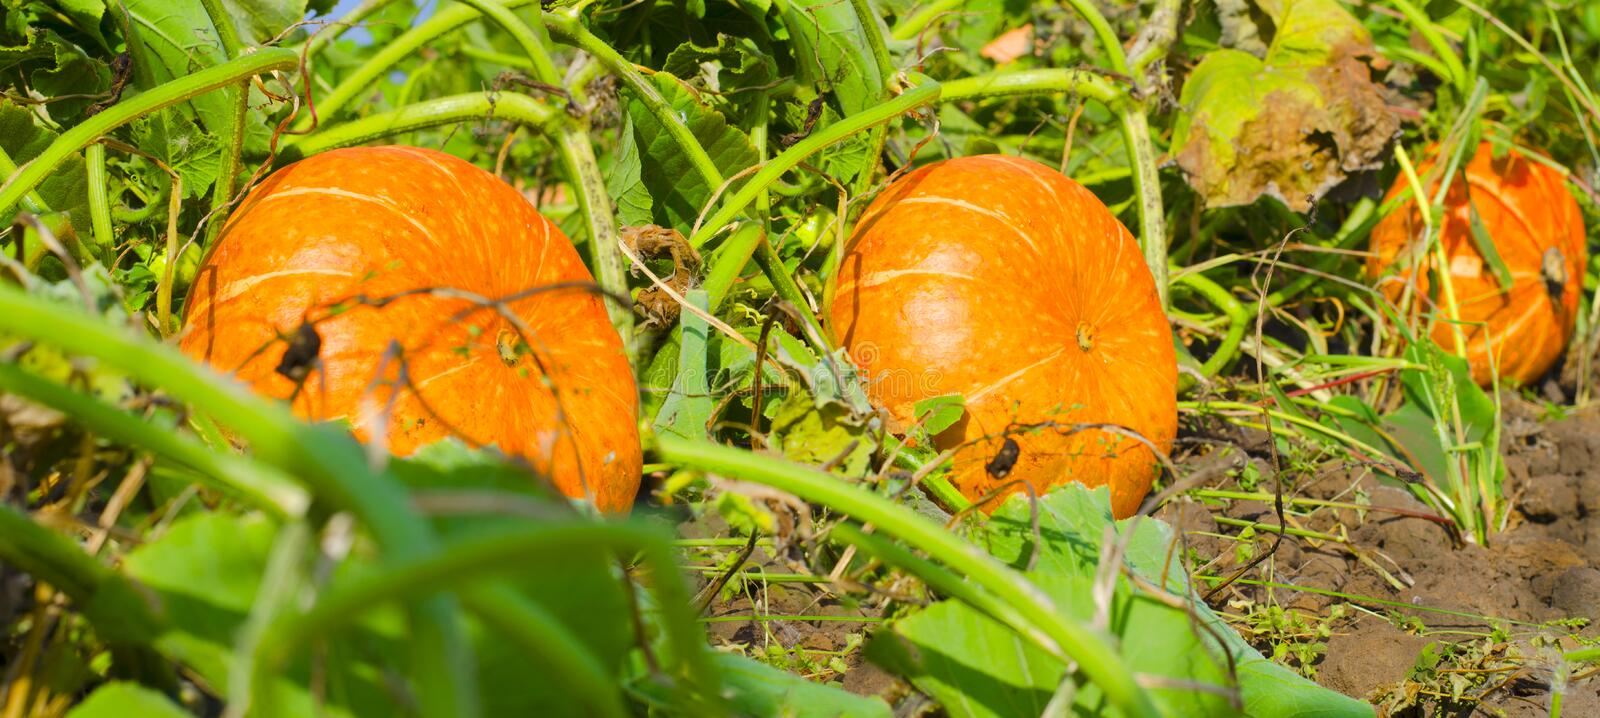 Potirons oranges au march? ext?rieur d'agriculteur Correction de potiron photographie stock libre de droits